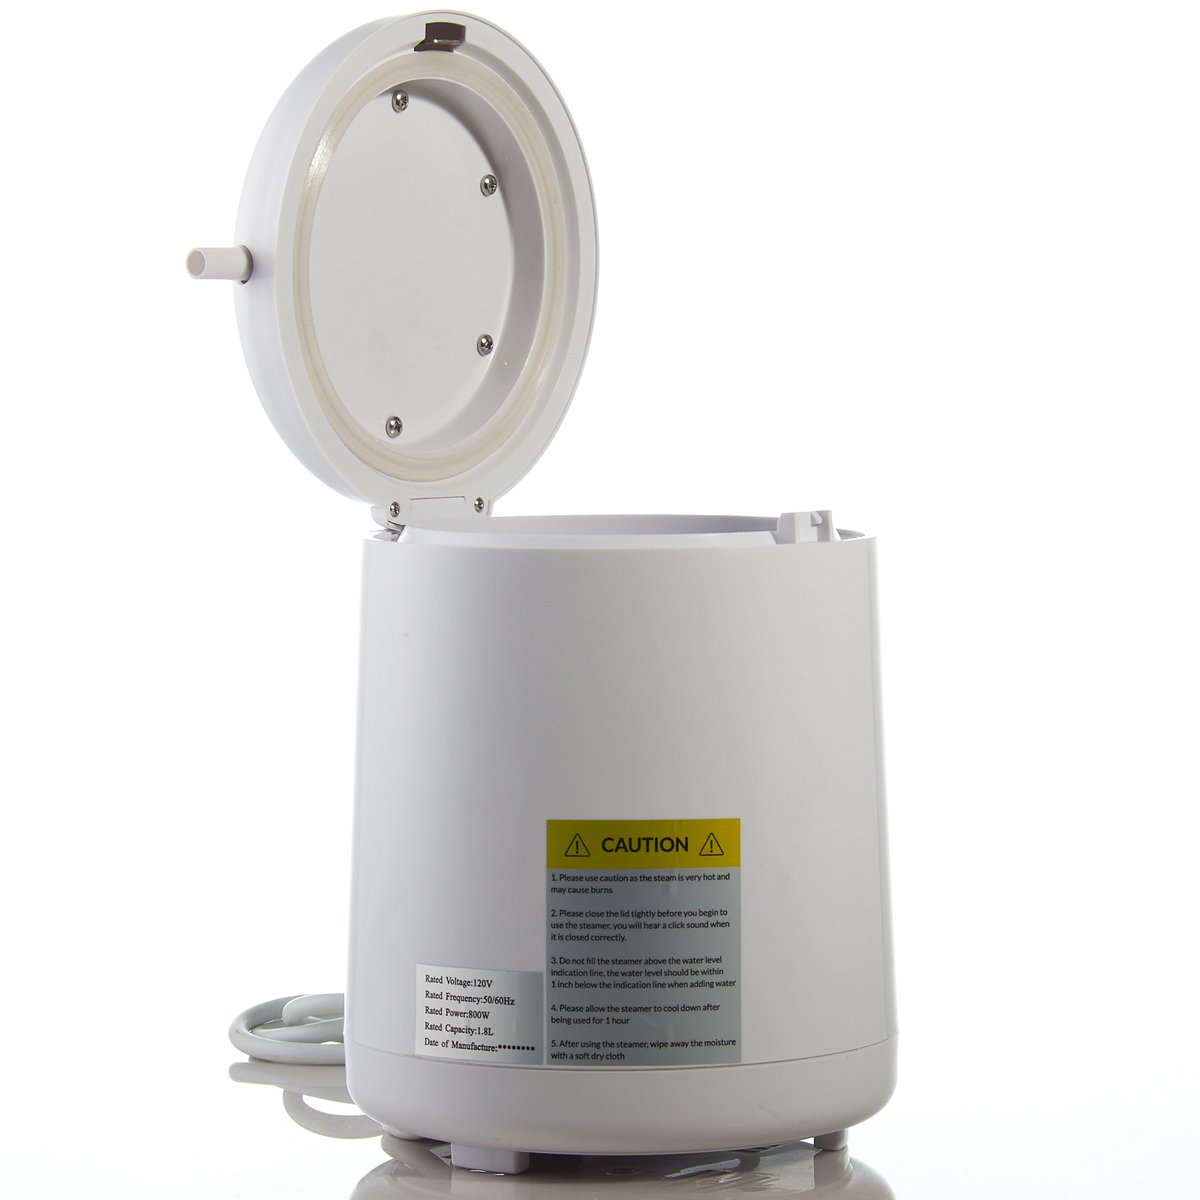 Steam generator for cleaning the apartment and house